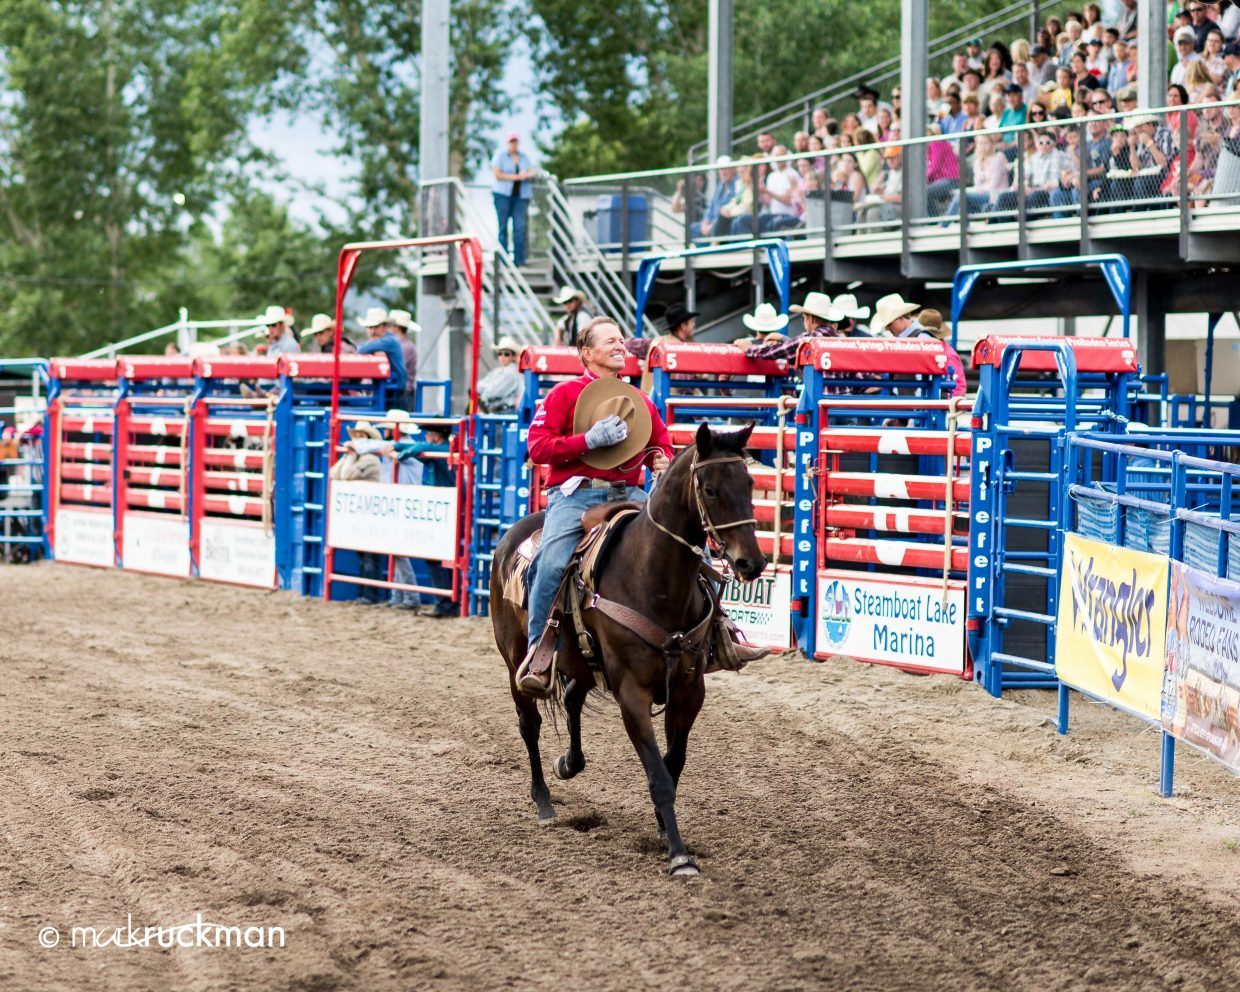 Saturday's rodeo. Submitted by: Mark Ruckman